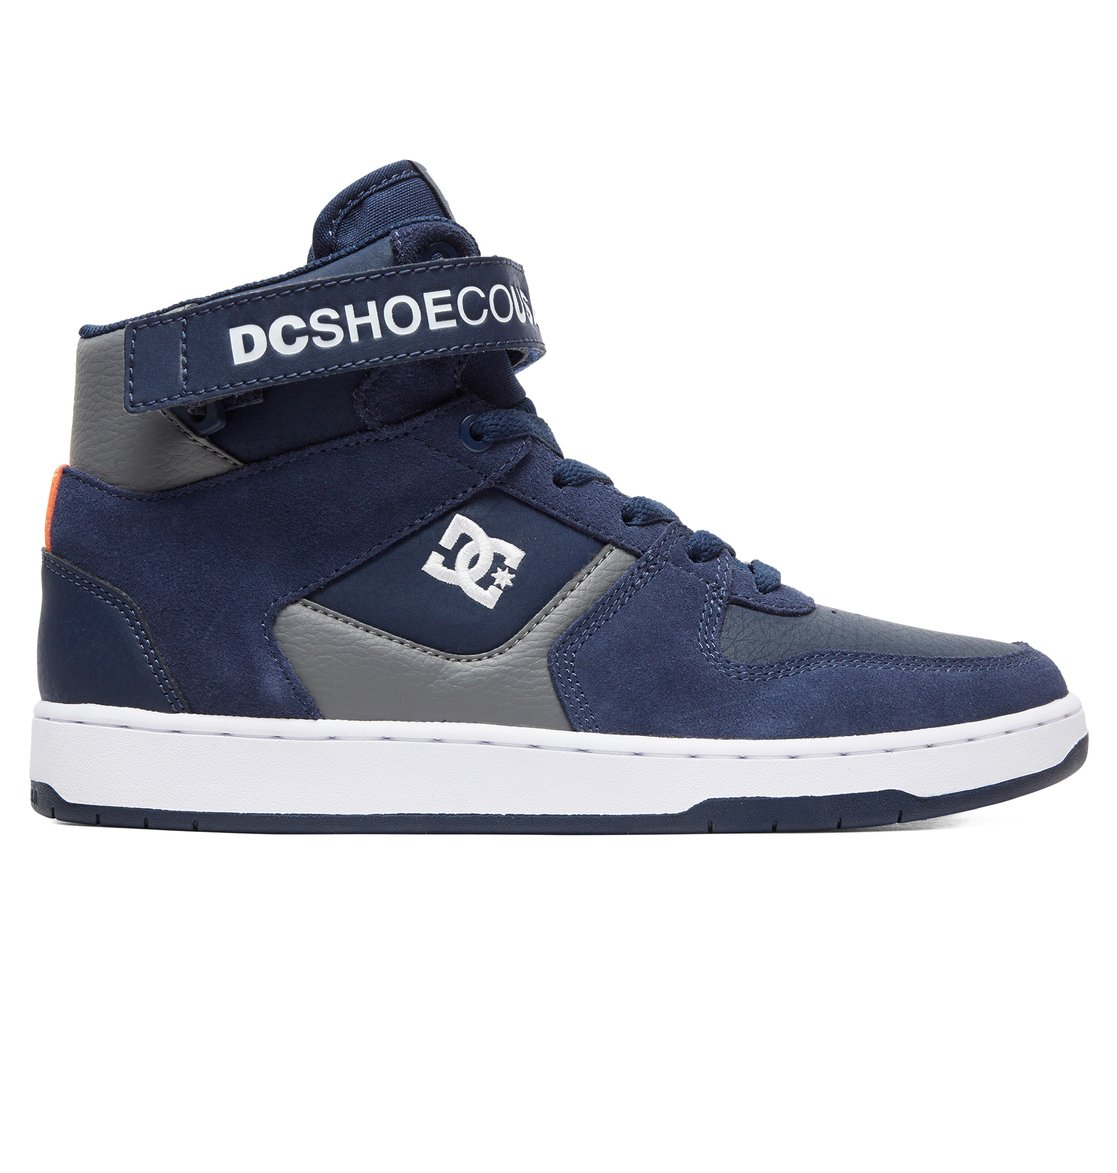 Chaussures Pour Homme Chaussures Montantes Pensford Pensford 8wOXZNn0Pk